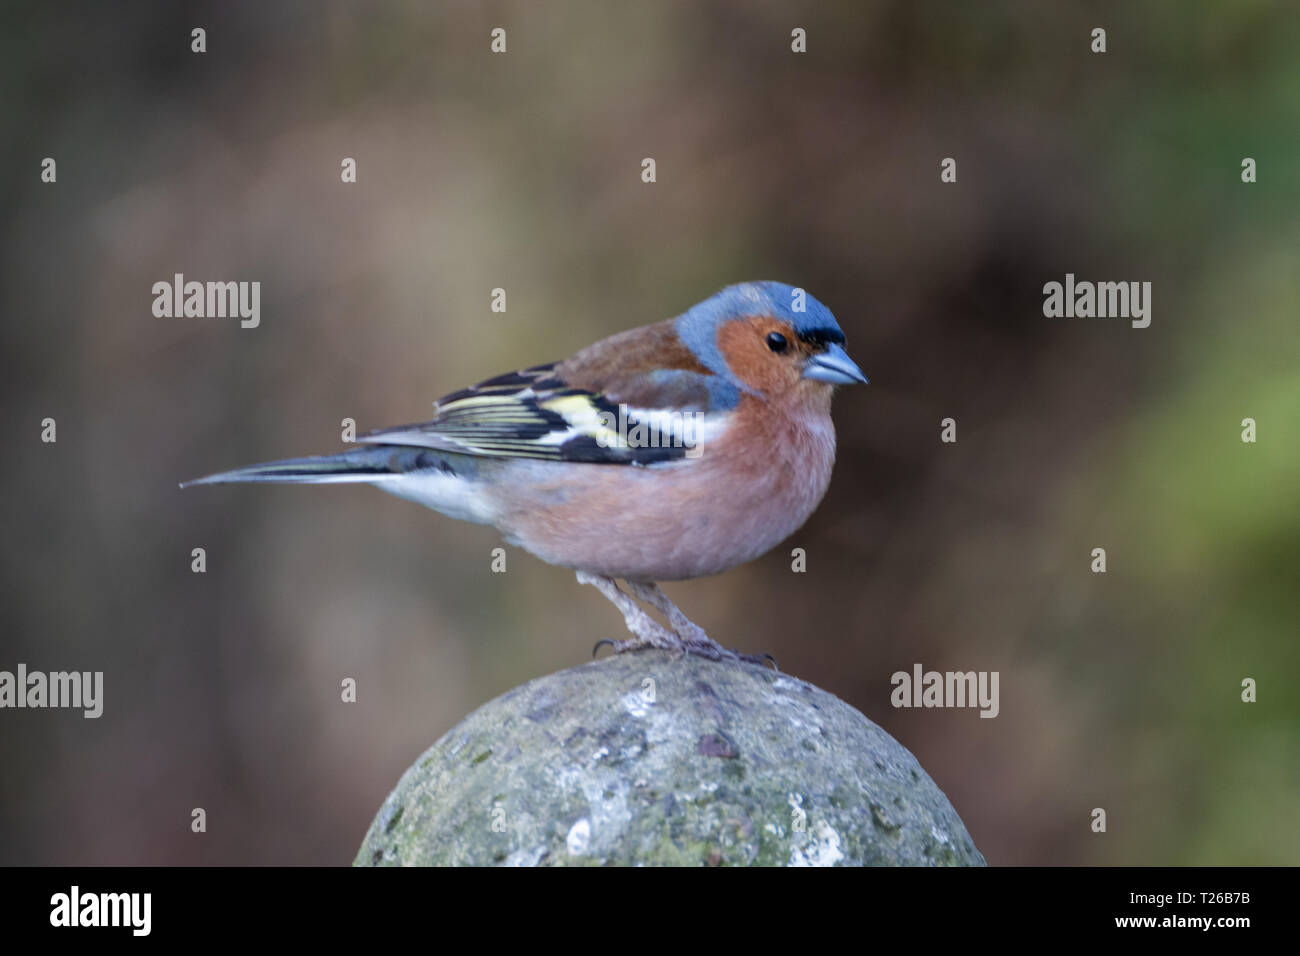 Chaffinch resting on a fence post close up - Stock Image